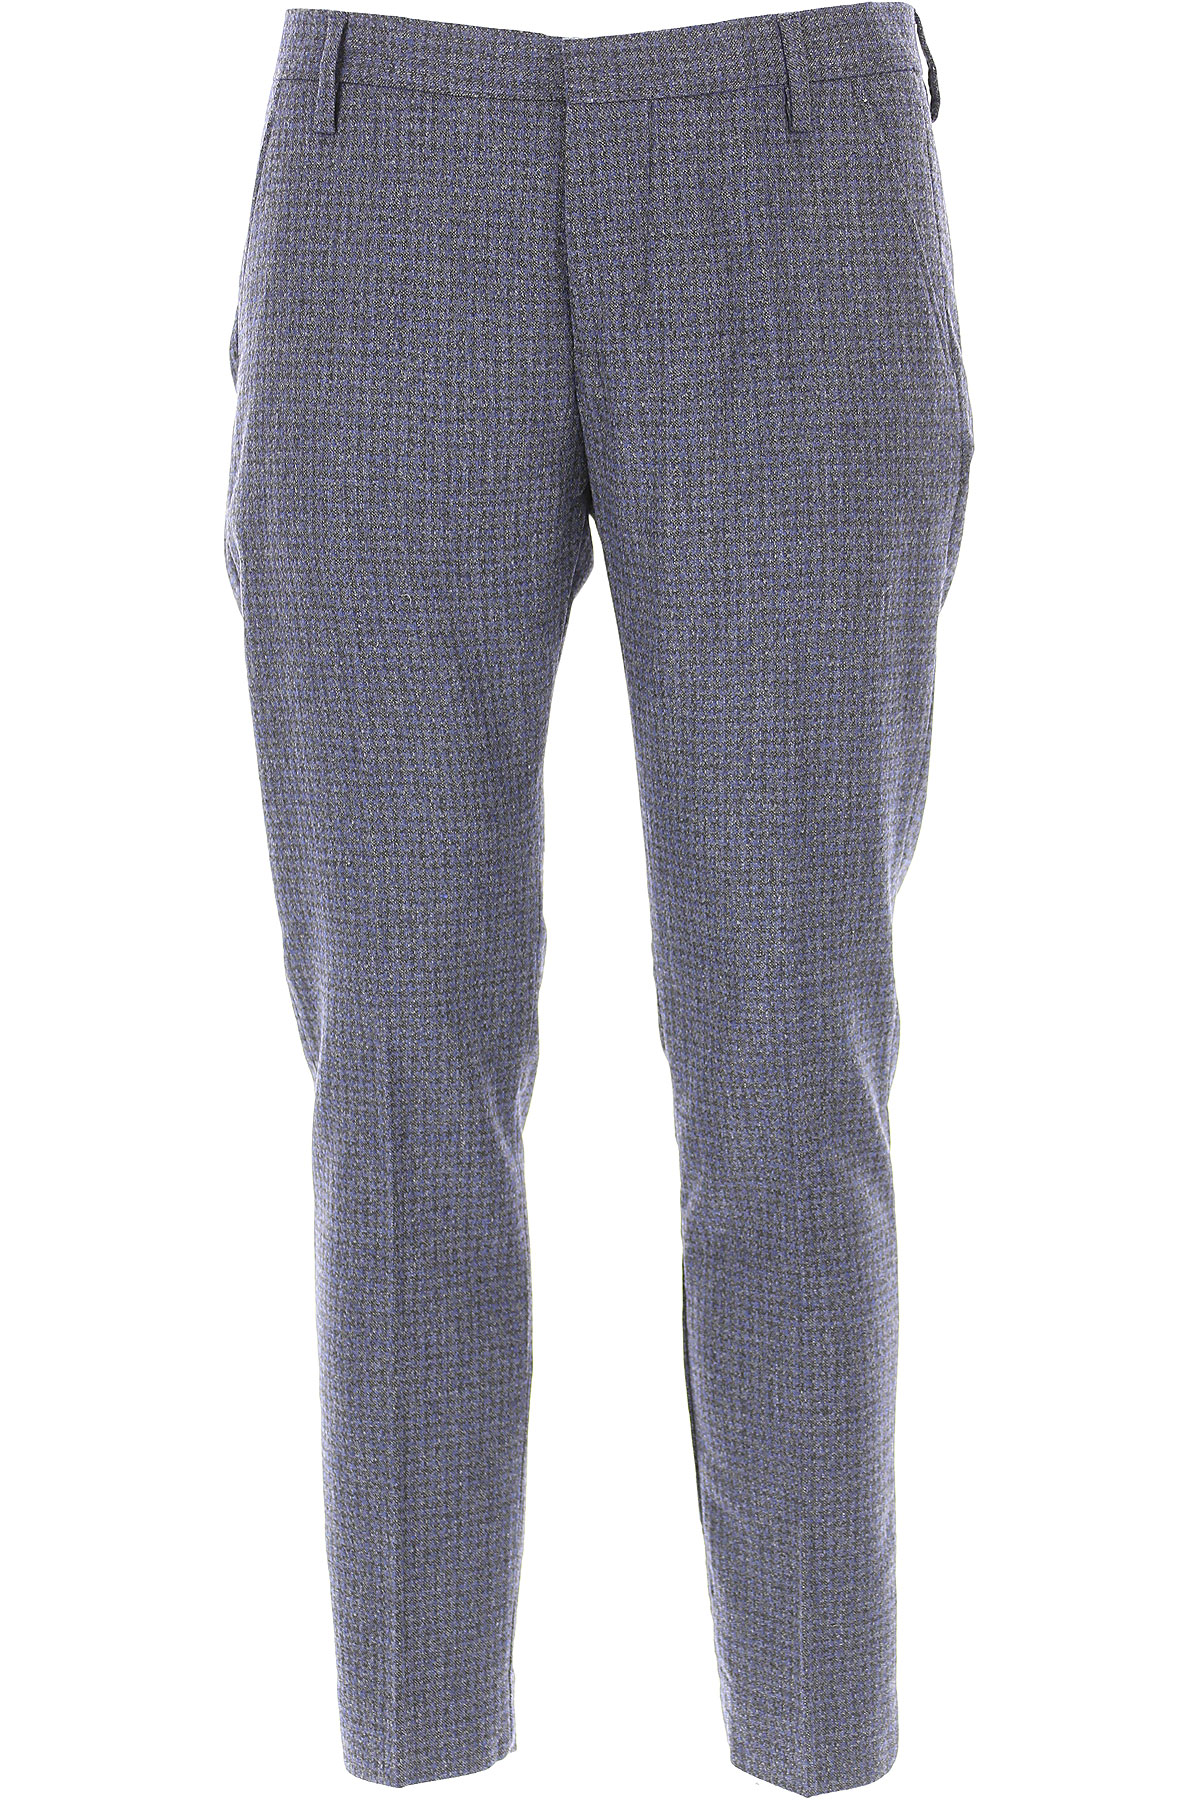 Entre Amis Pants for Men, Blue, Wool, 2019, 31 32 34 35 36